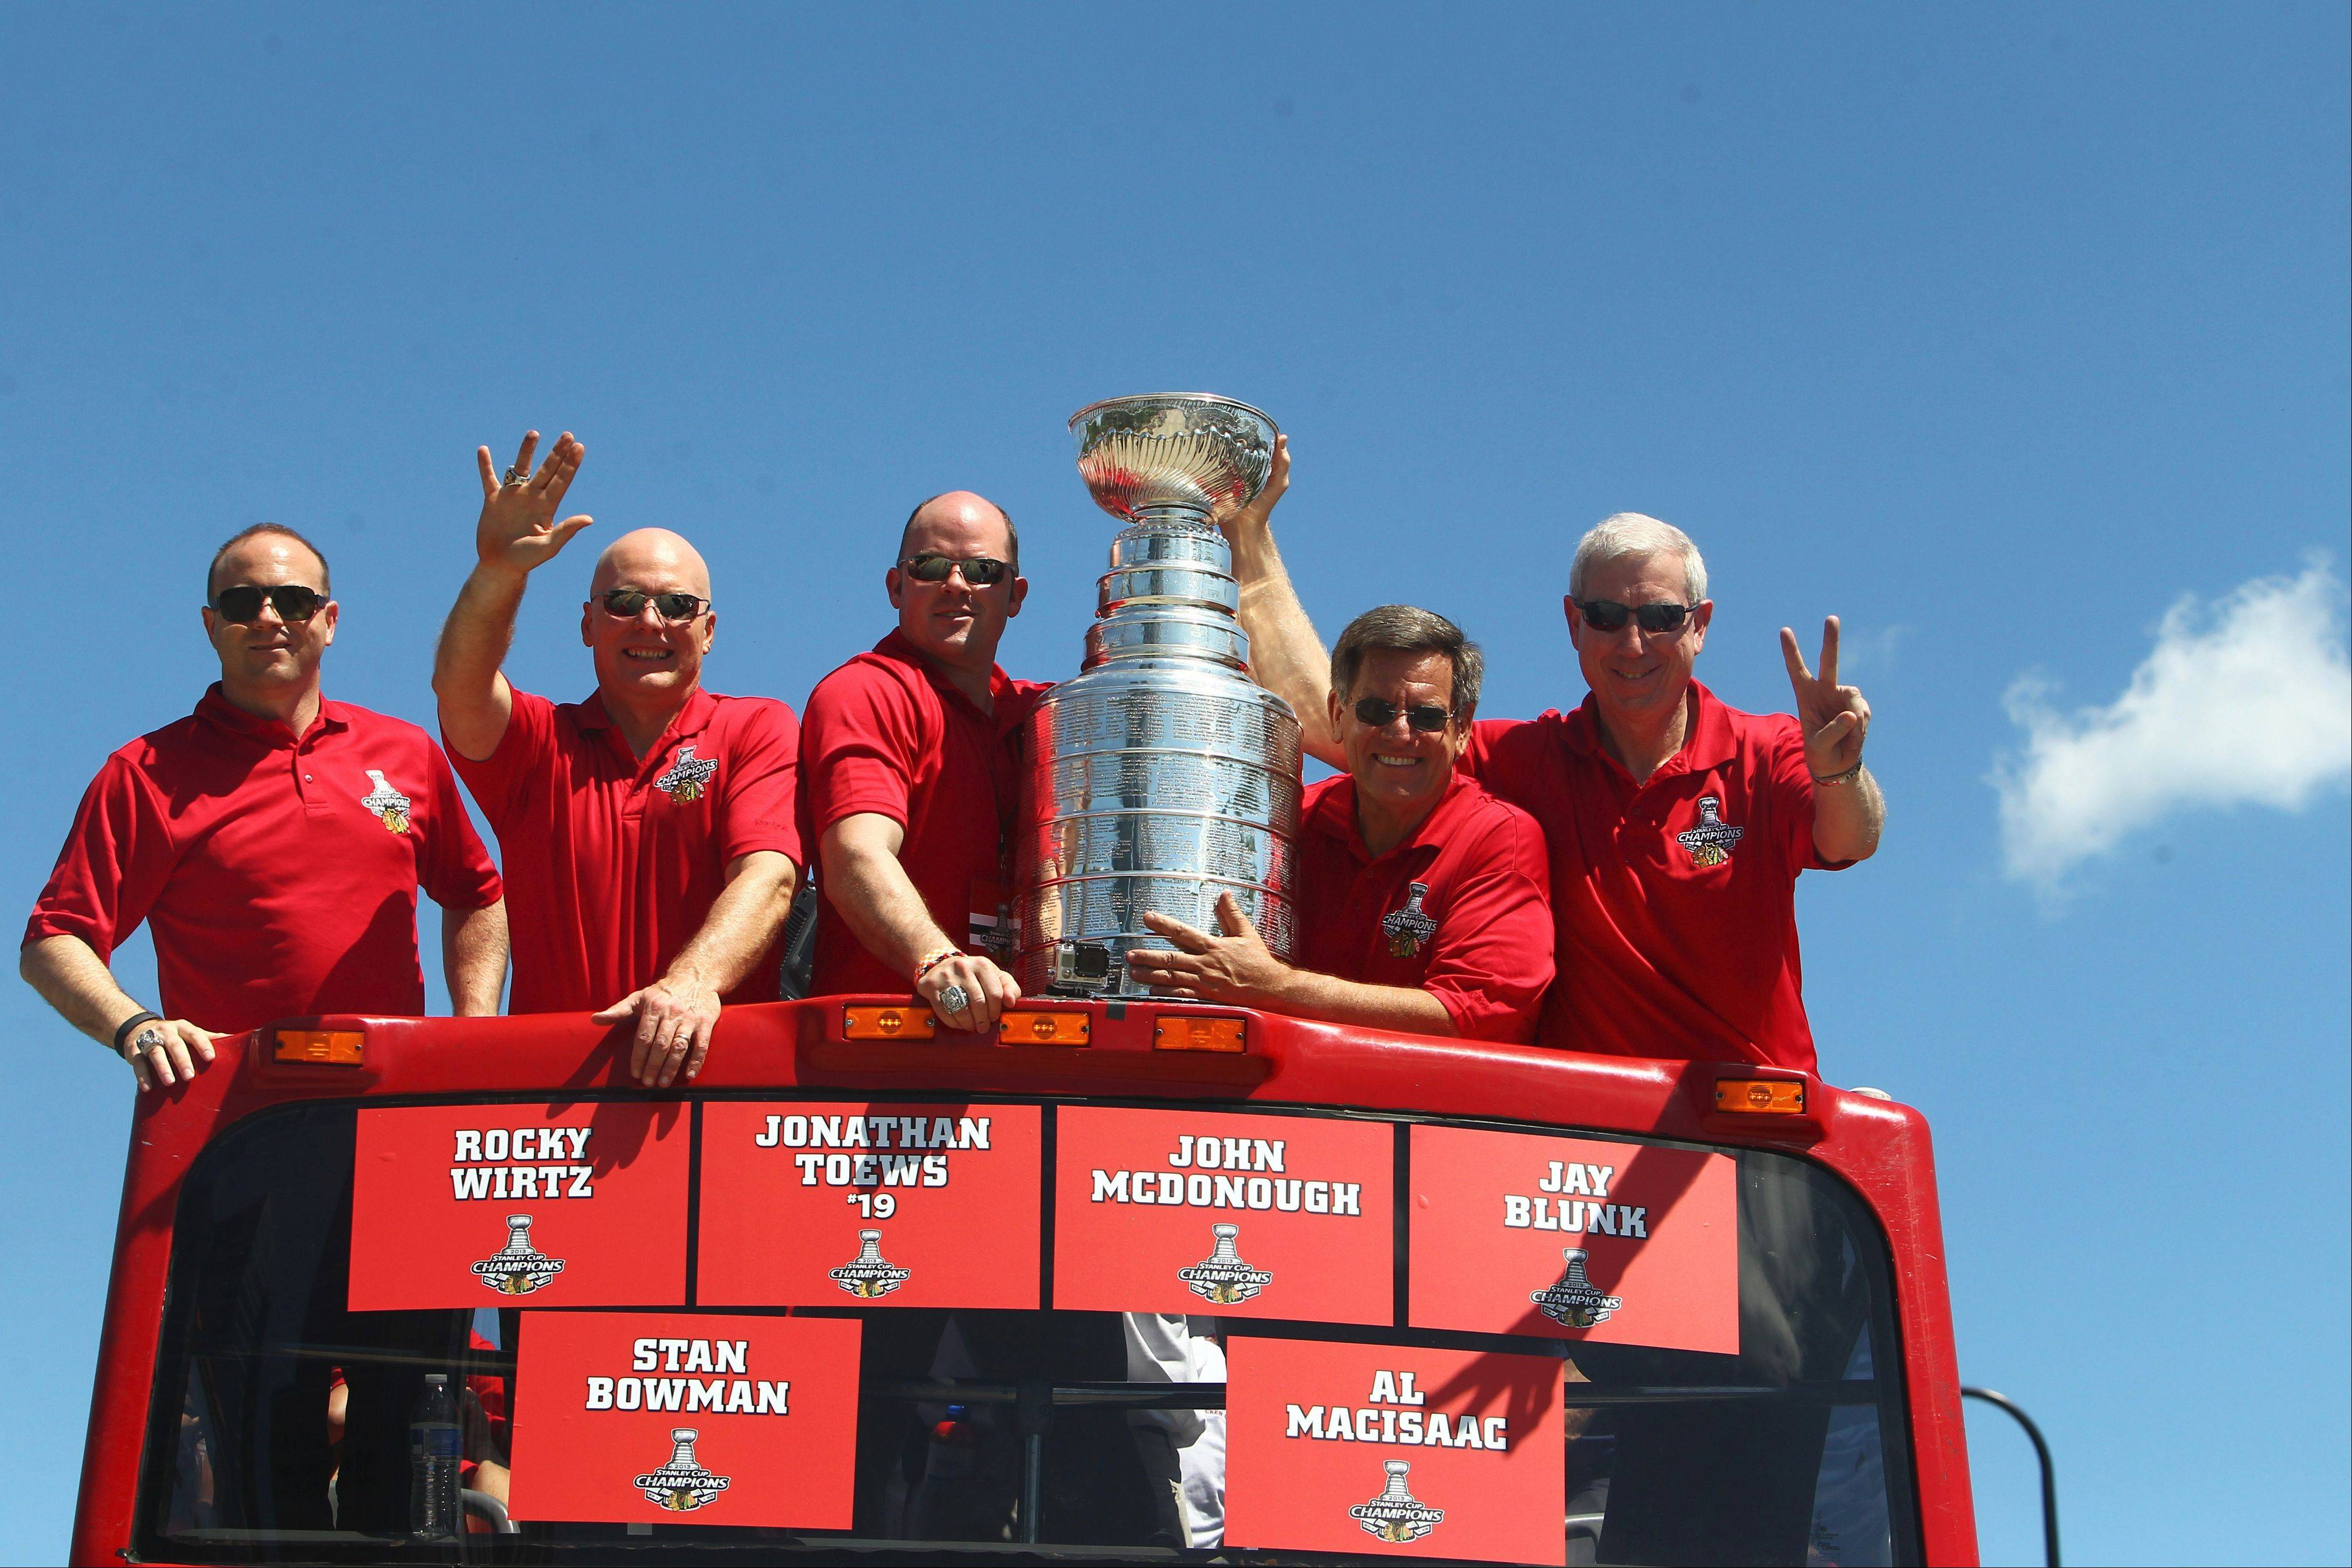 With the recent signings of Corey Crawford and Niklas Hjalmarsson to contract extensions, there may be more Stanley Cup parades ahead for the Blackhawks brass. From left: vice president/general manager Stan Bowman, executive vice president Jay Blunk, vice president Al MacIsaac, chairman Rocky Wirtz and CEO and president John McDonough.